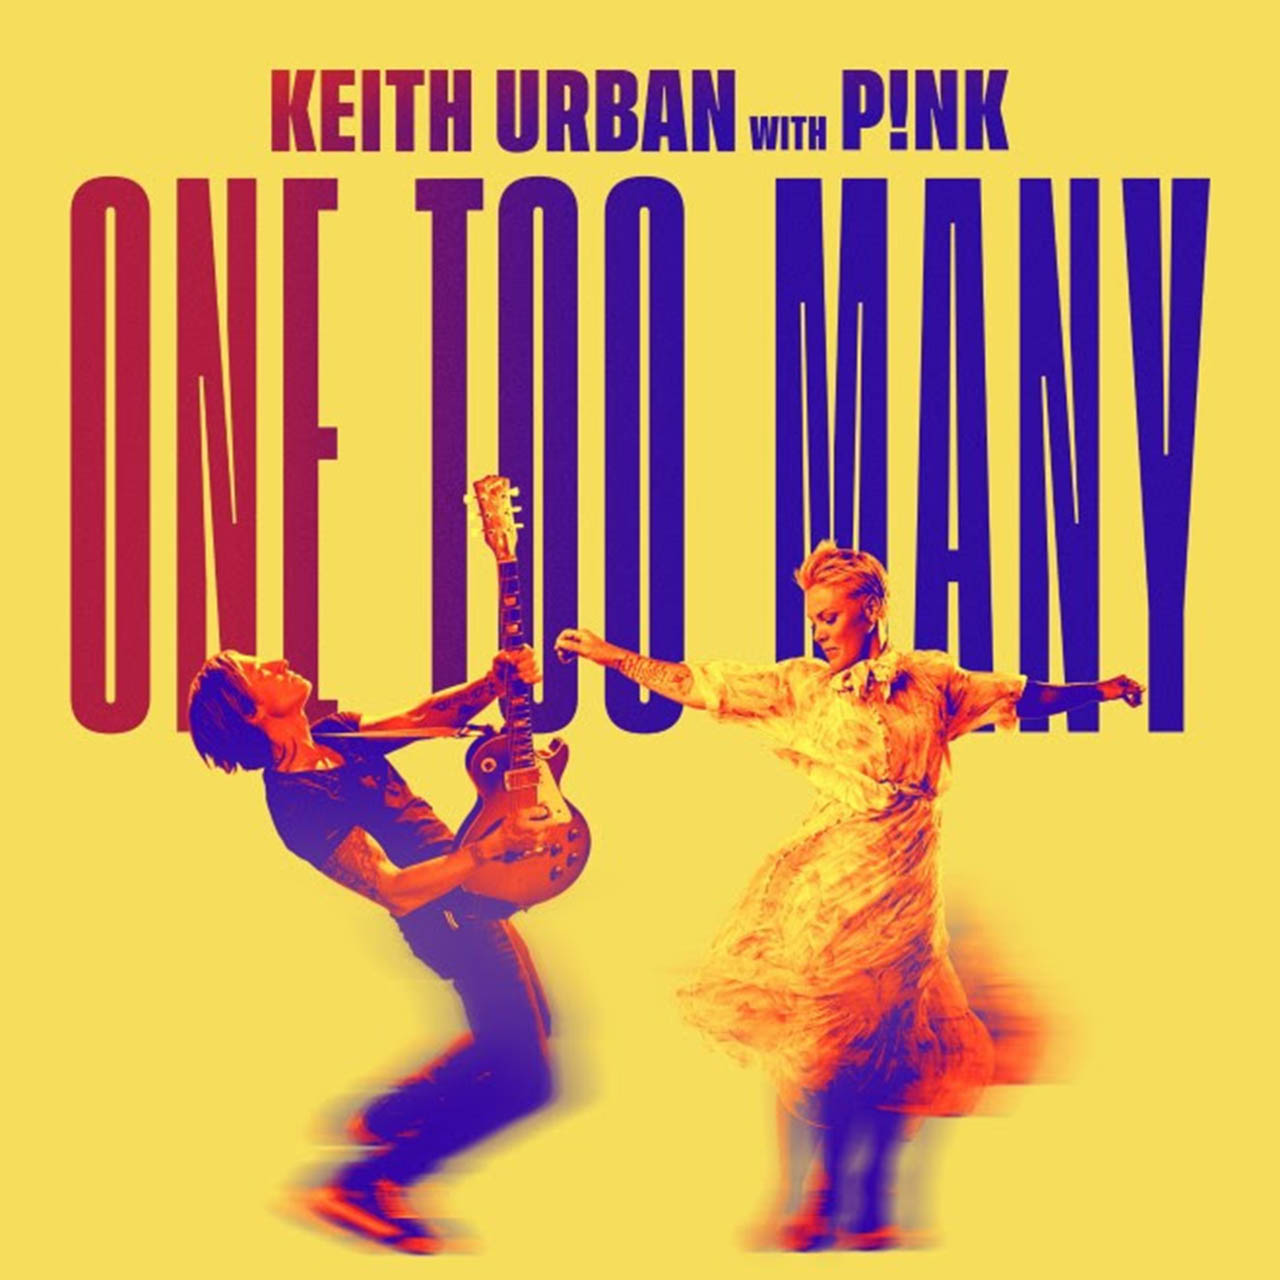 Keith Urban and Pink - The Speed of Now